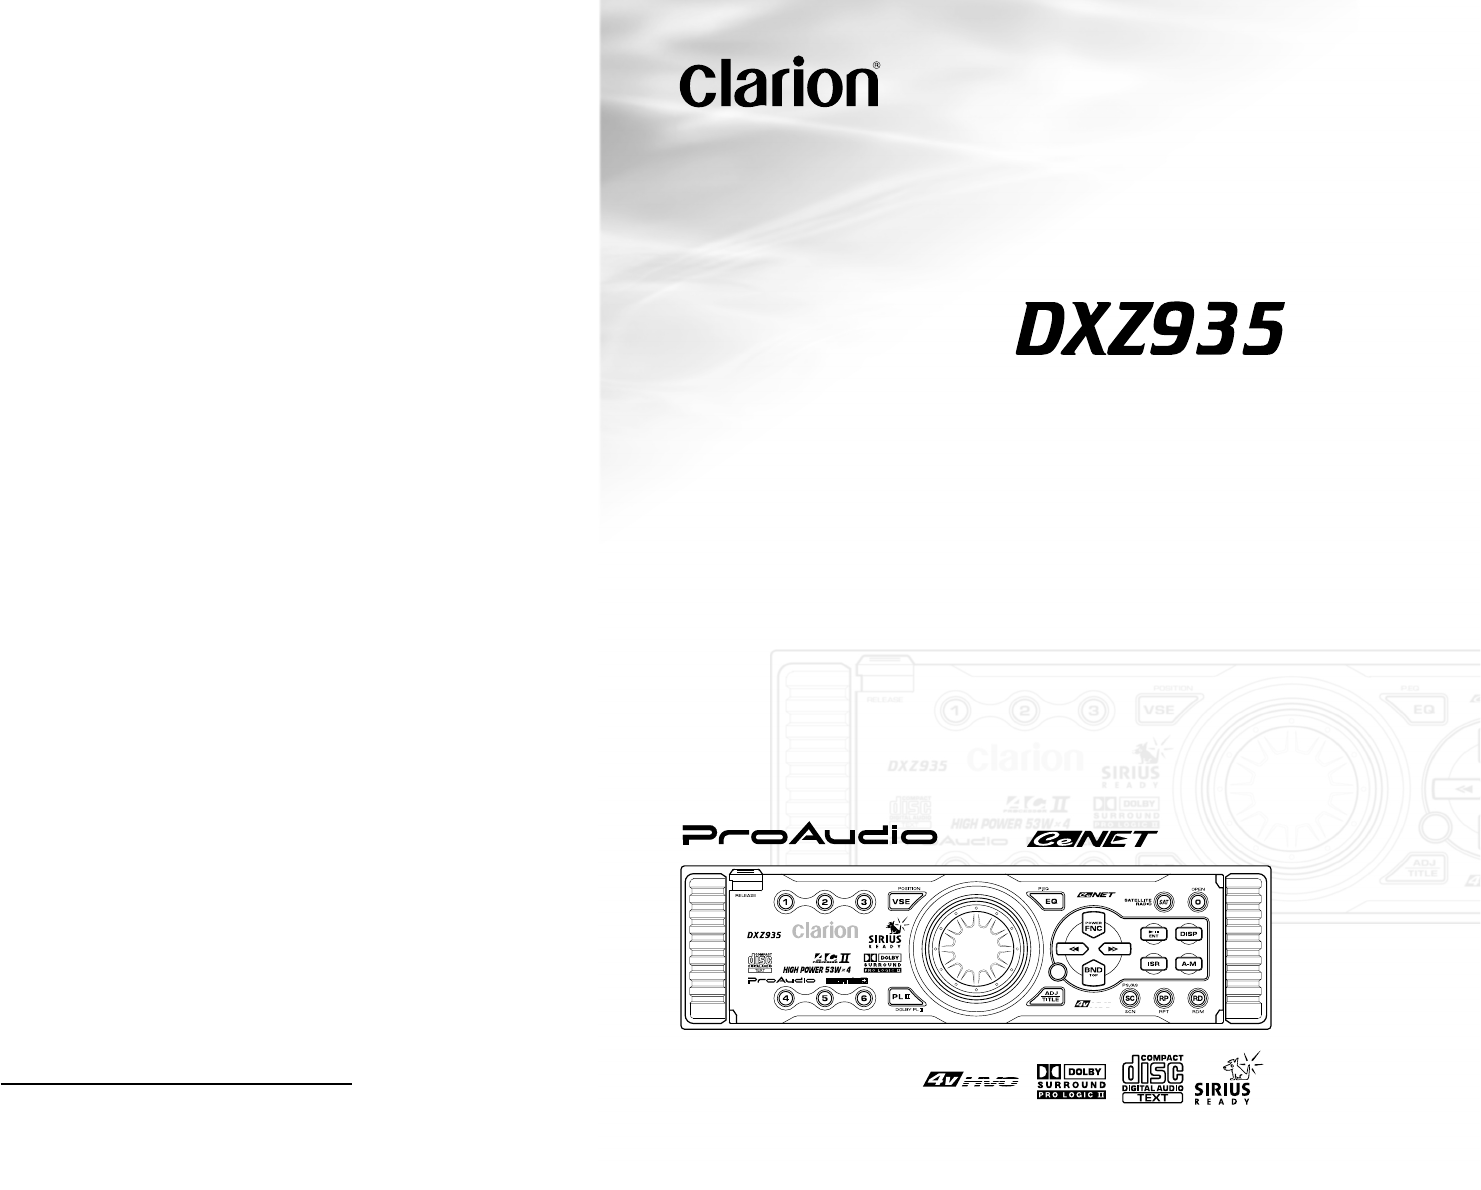 clarion cd player dxz935 user guide